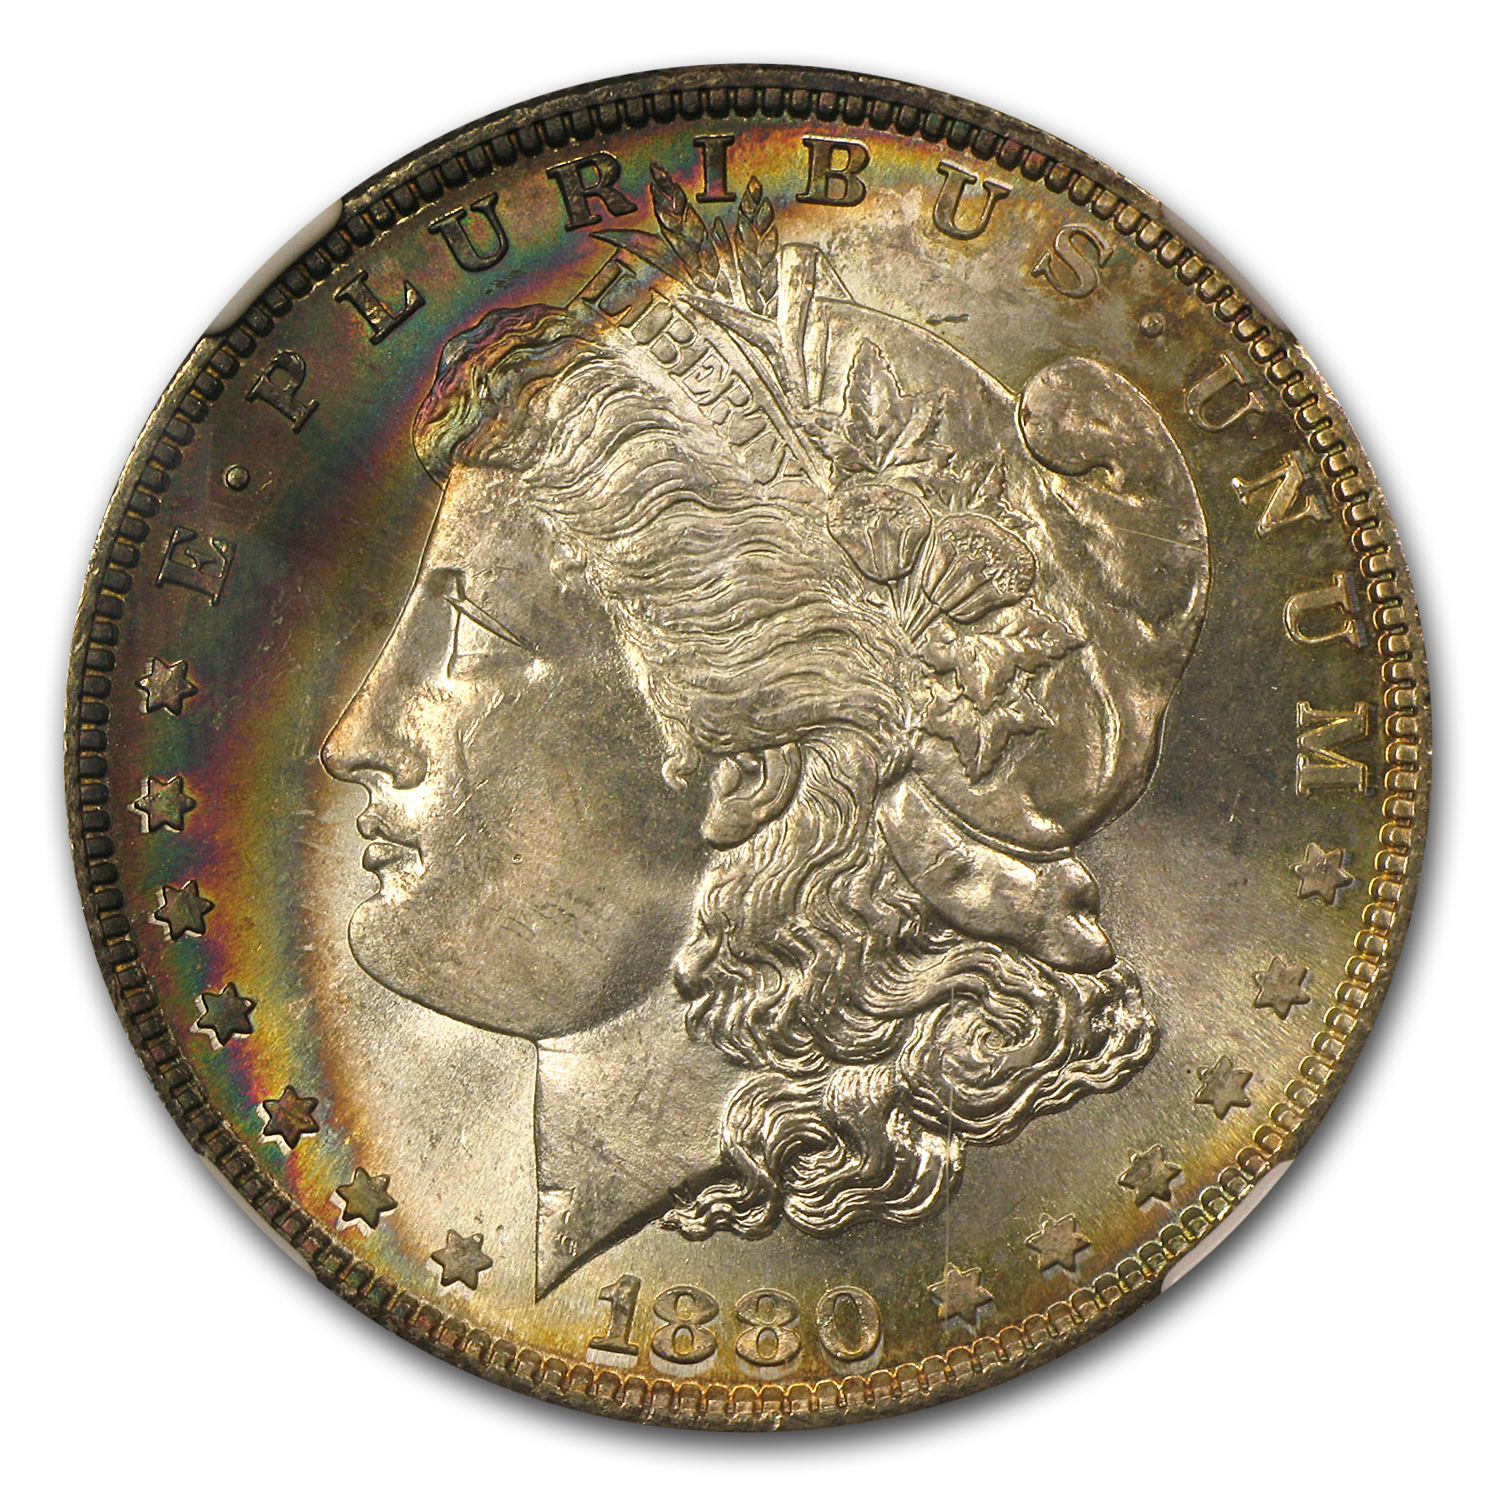 1880-S Morgan Dollar - MS-66* Star NGC - Crescent Obverse Toning